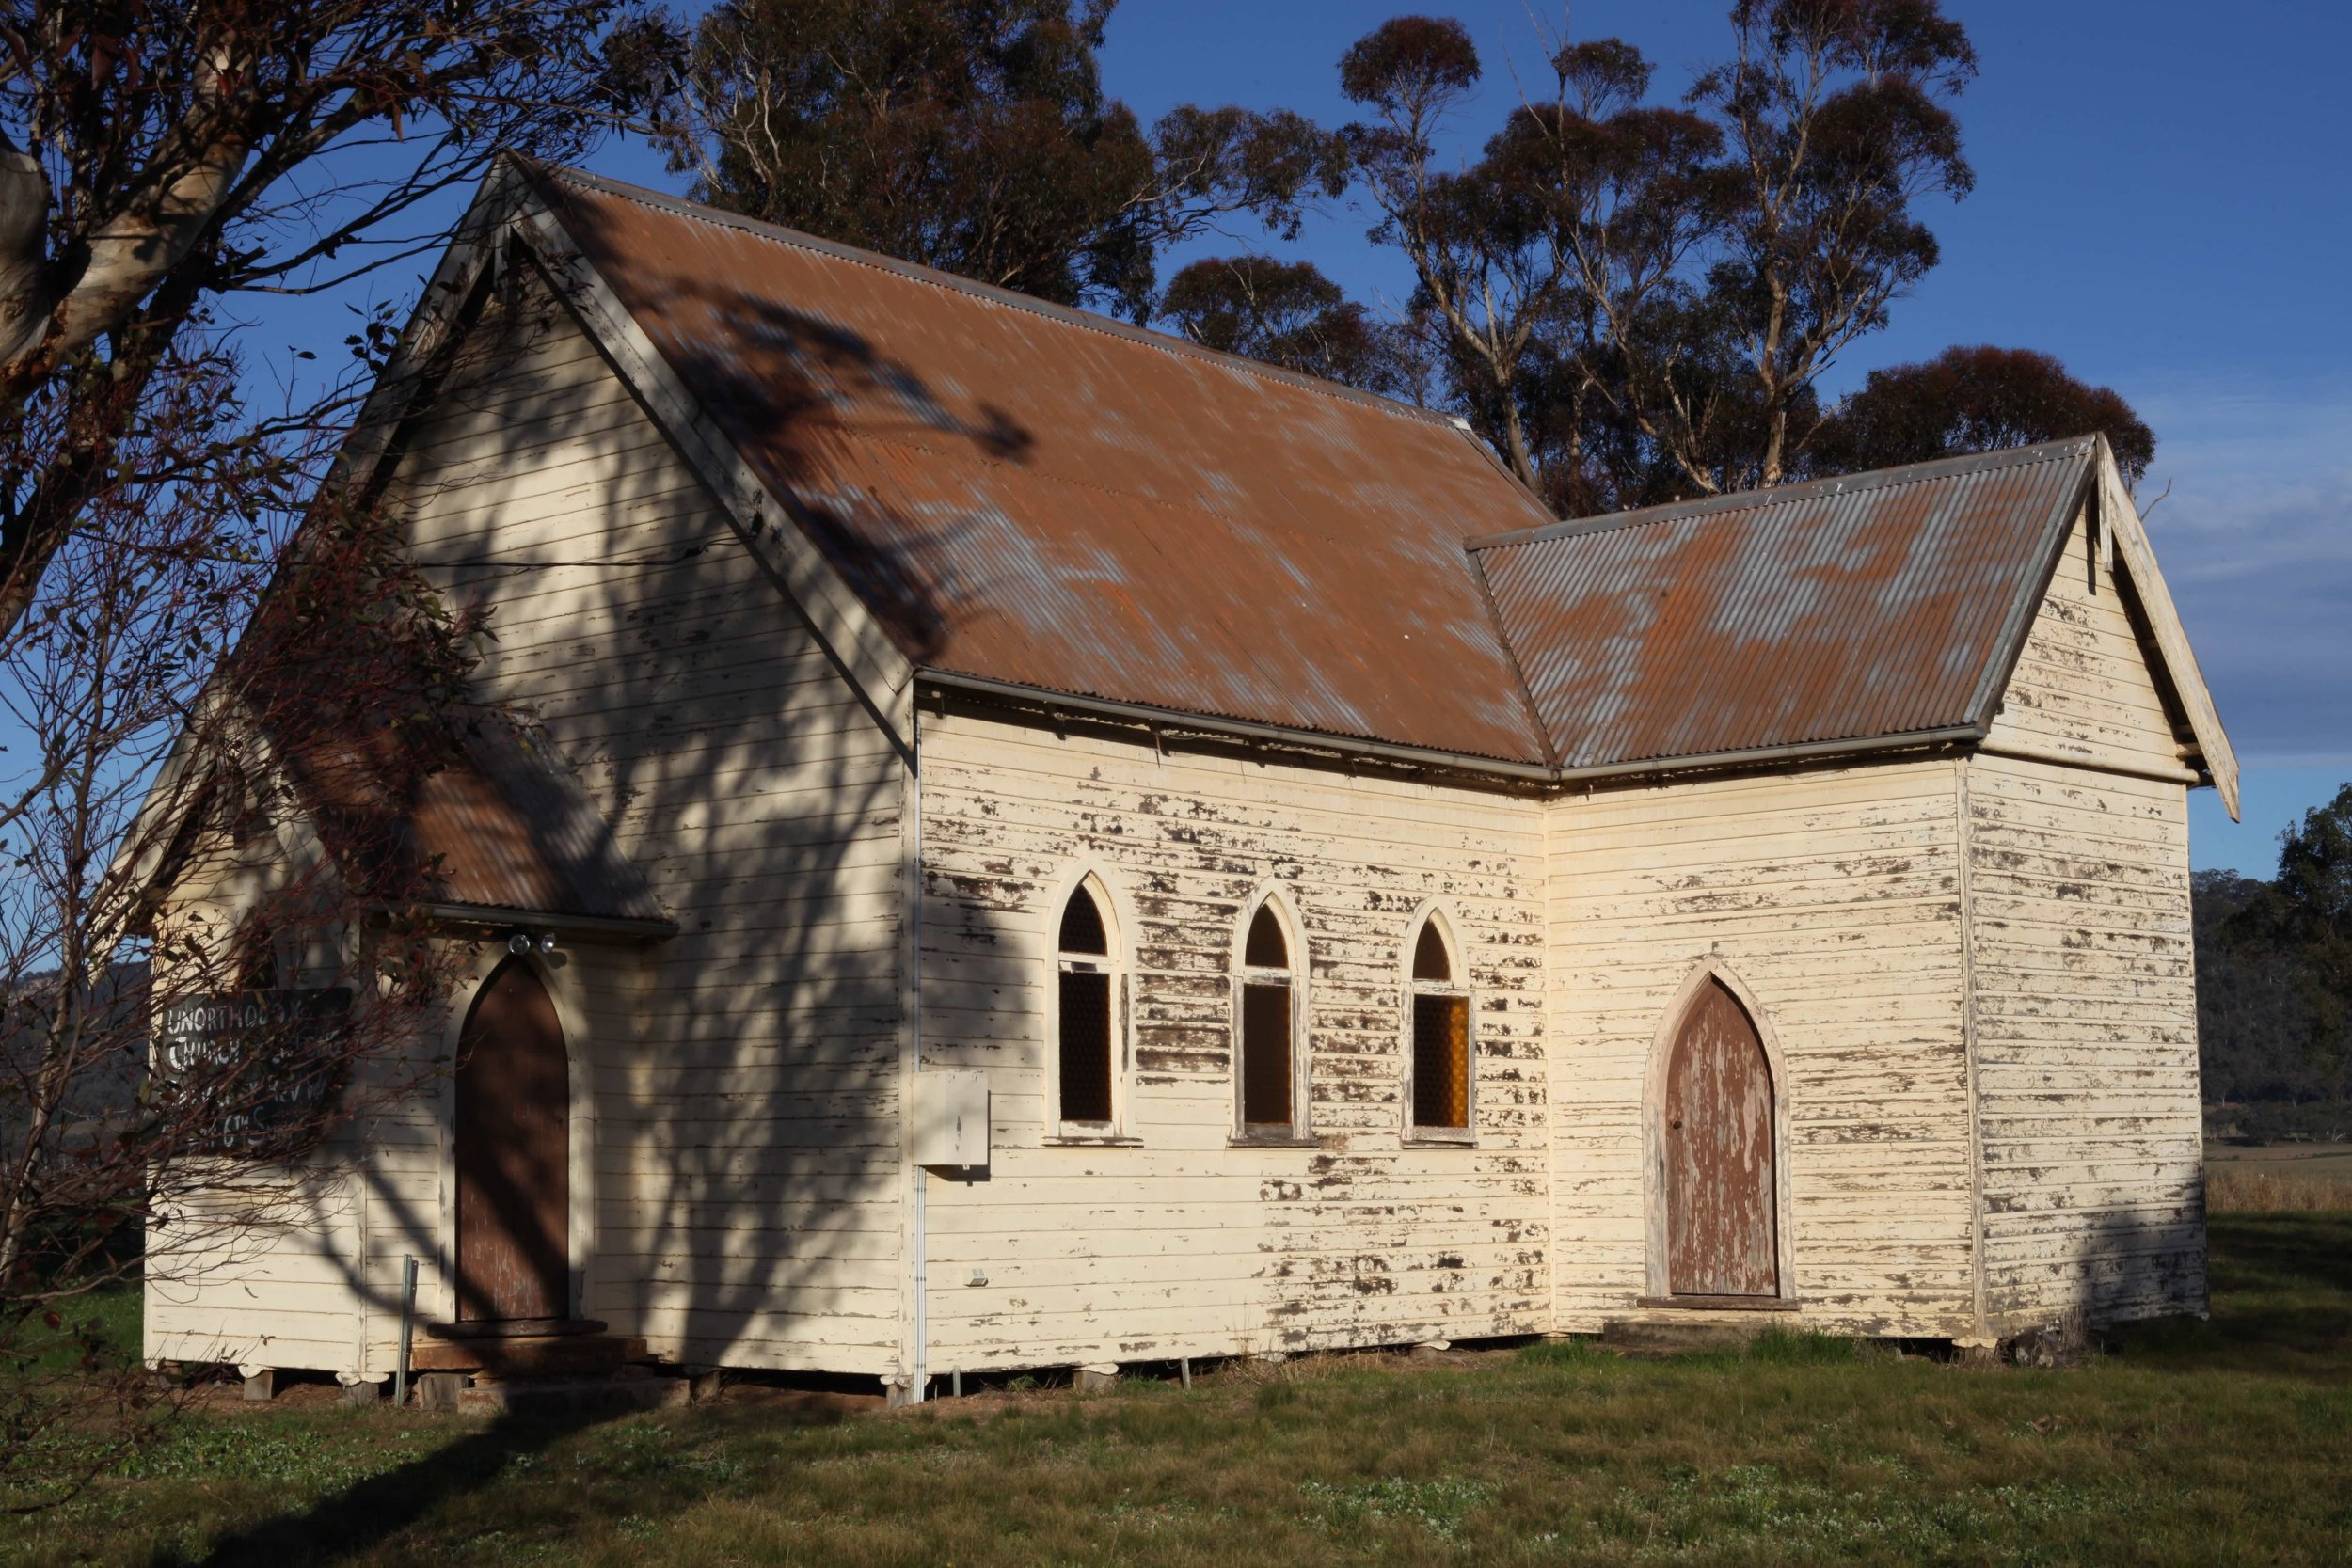 Bylong's now closed Catholic Church. The church is now owned by KEPCO, the company seeking to develop a coal mine in the Bylong valley. There is a small cemetery behind the church and KEPCO plan to have the graves  dug up and moved  to make way for the proposed mine.